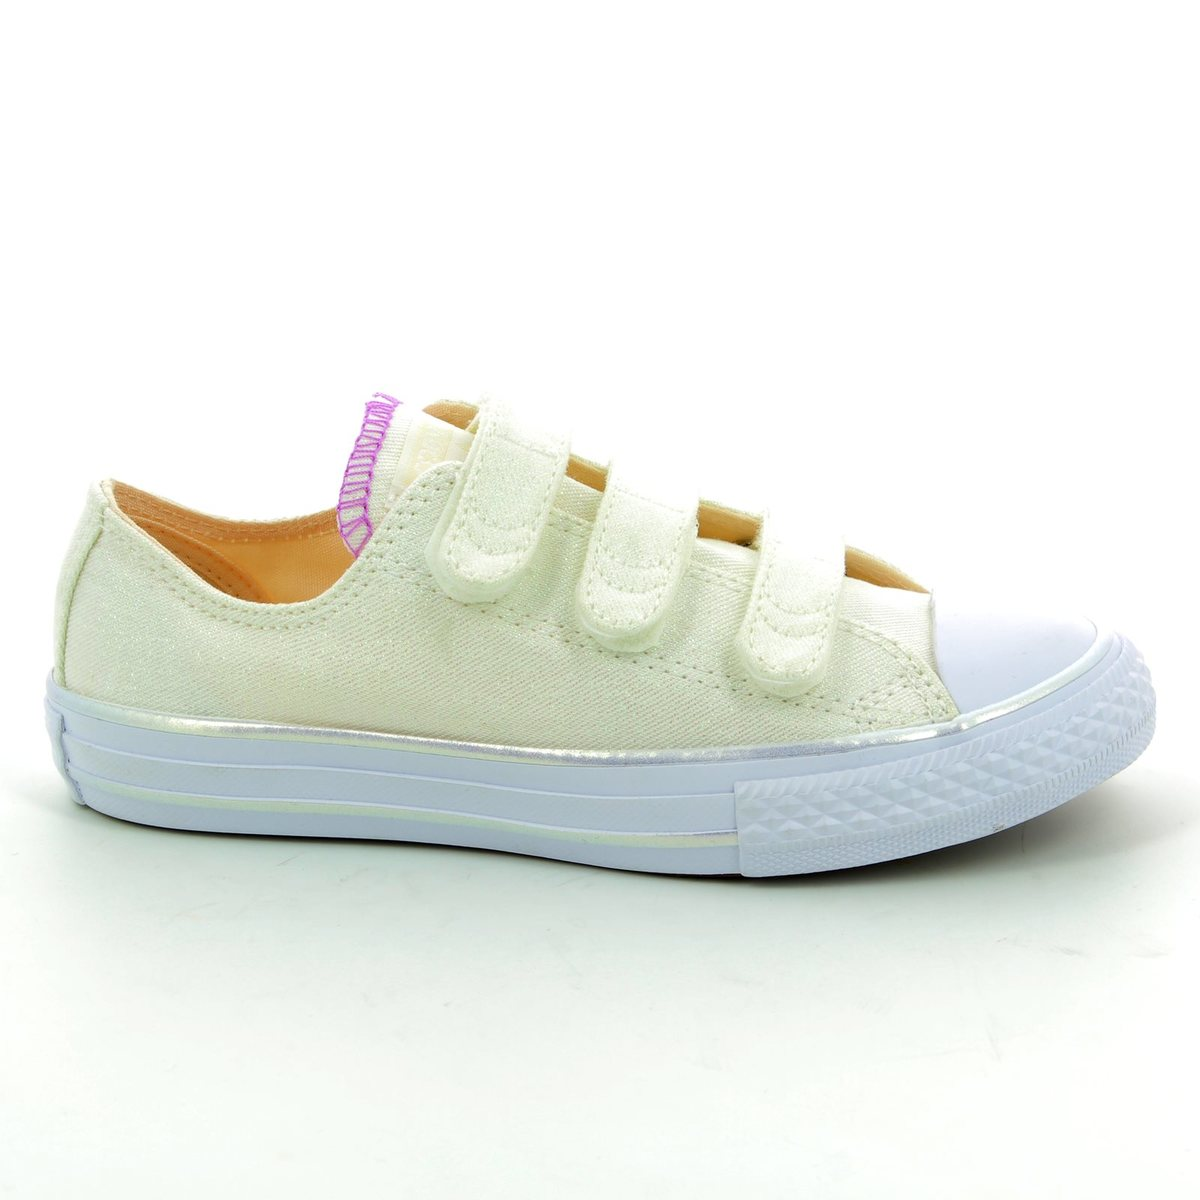 3774734014241f Converse Trainers - White multi - 656041C/102 Chuck Taylor All Star 3V OX  Velcro